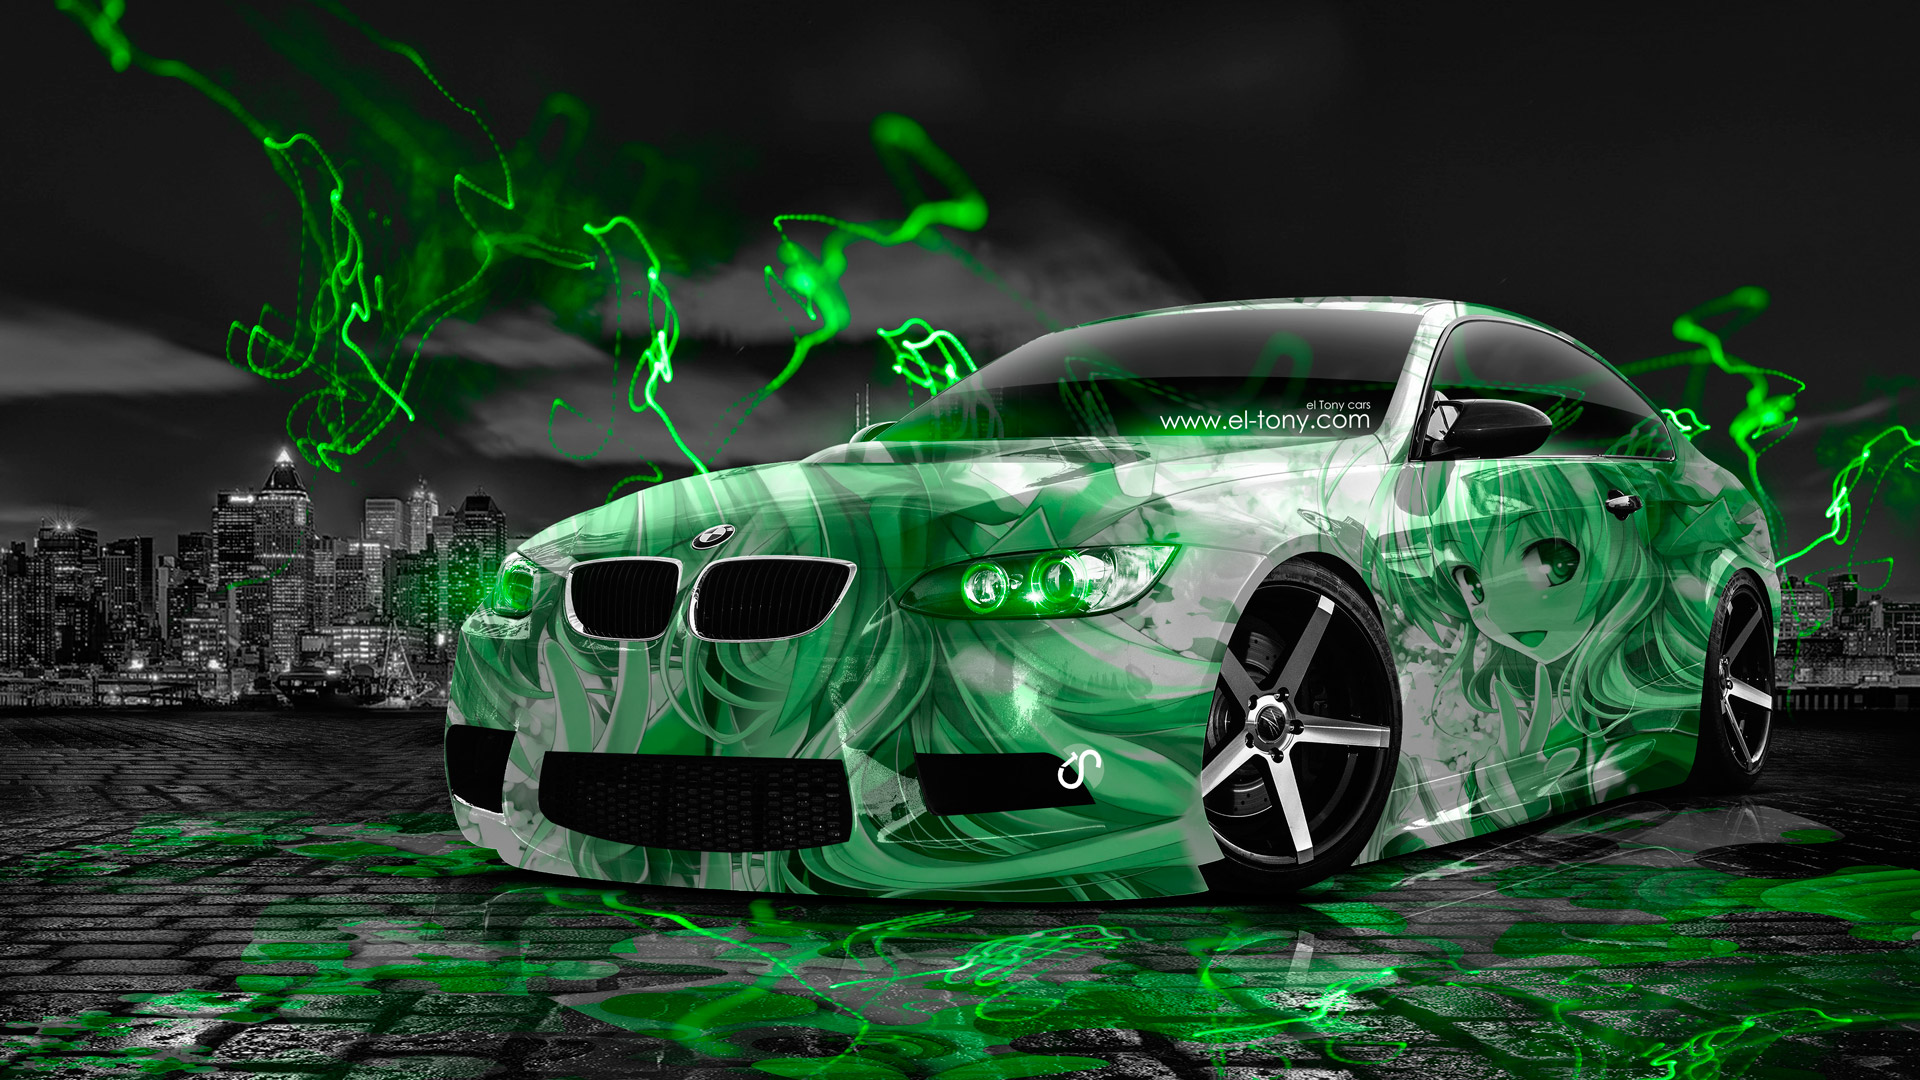 Bmw E92 M3 Anime Aerography City Car 2014 El Tony